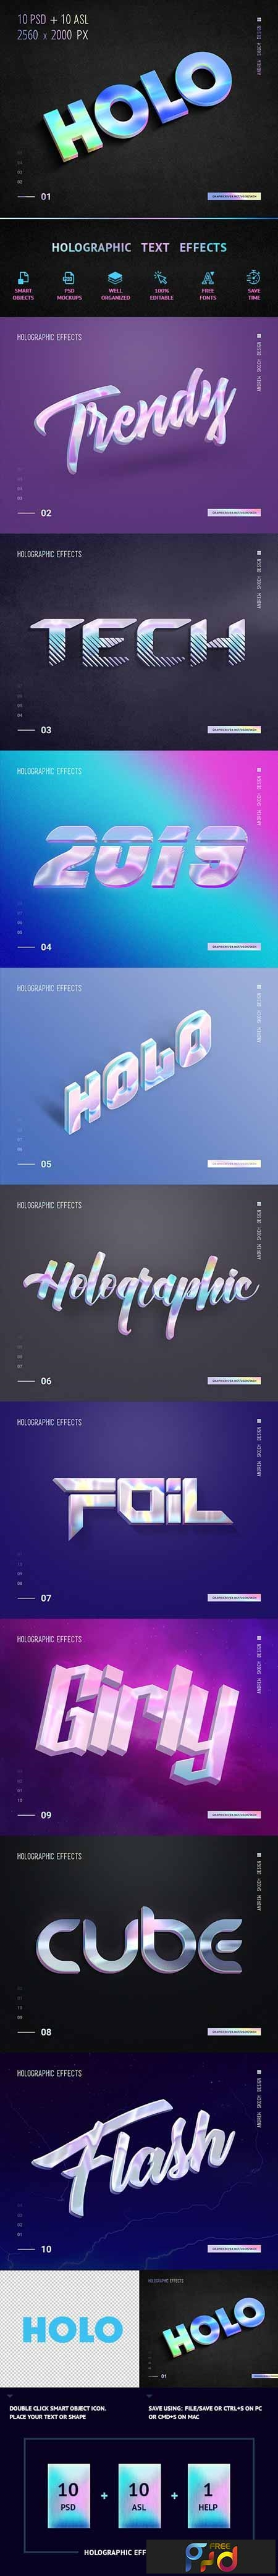 Holographic Text - 10 PSD 23178255 1